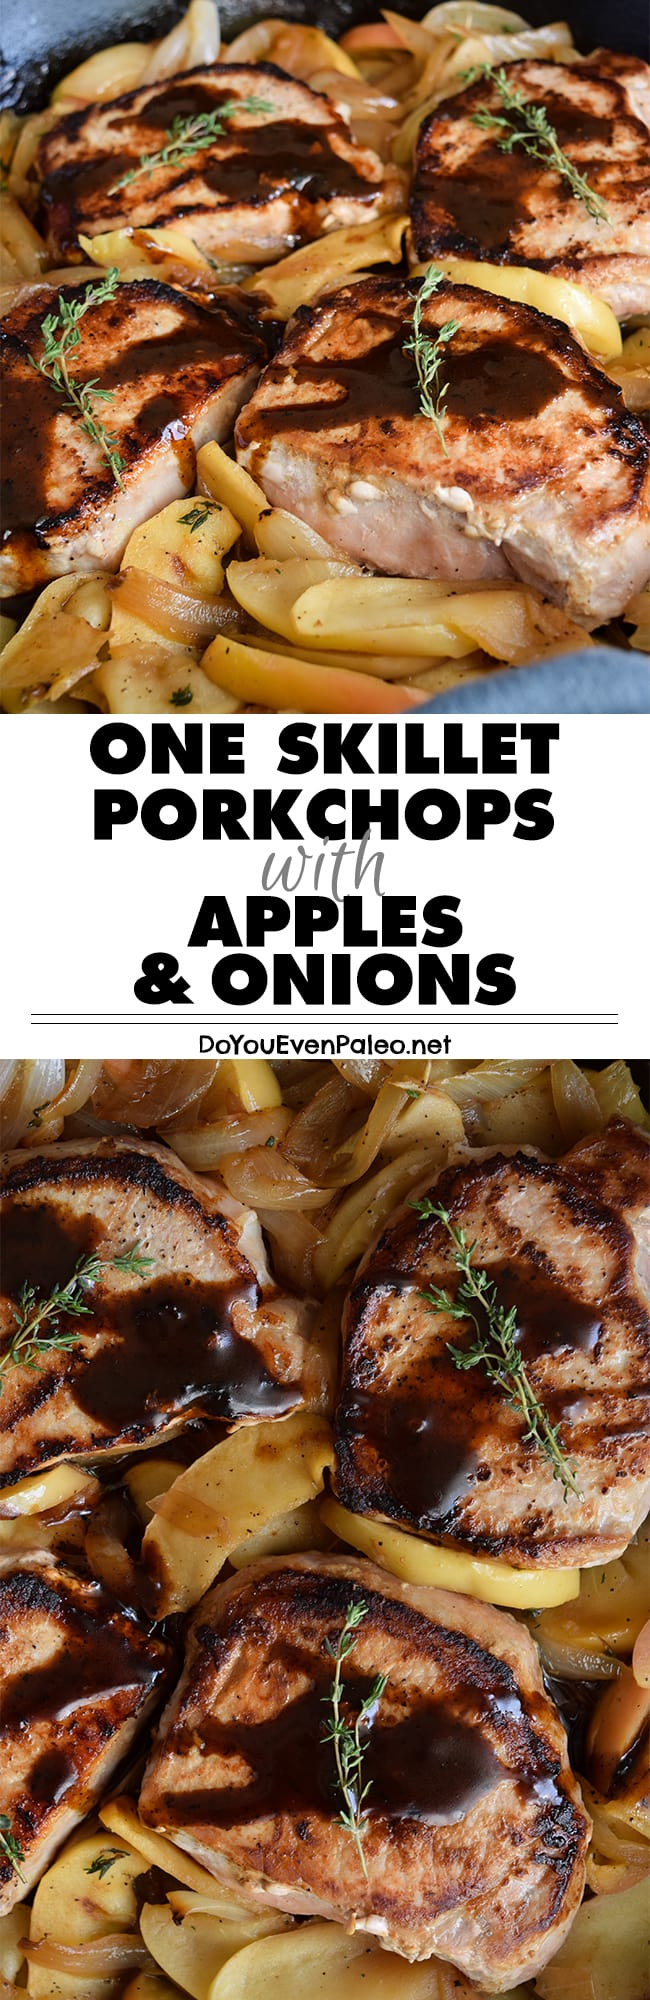 One Skillet Pork chops with Apples & Onions - get dinner on the table in roughly 30 minutes! Gluten free, paleo, Whole30, AIP friendly | DoYouEvenPaleo.net